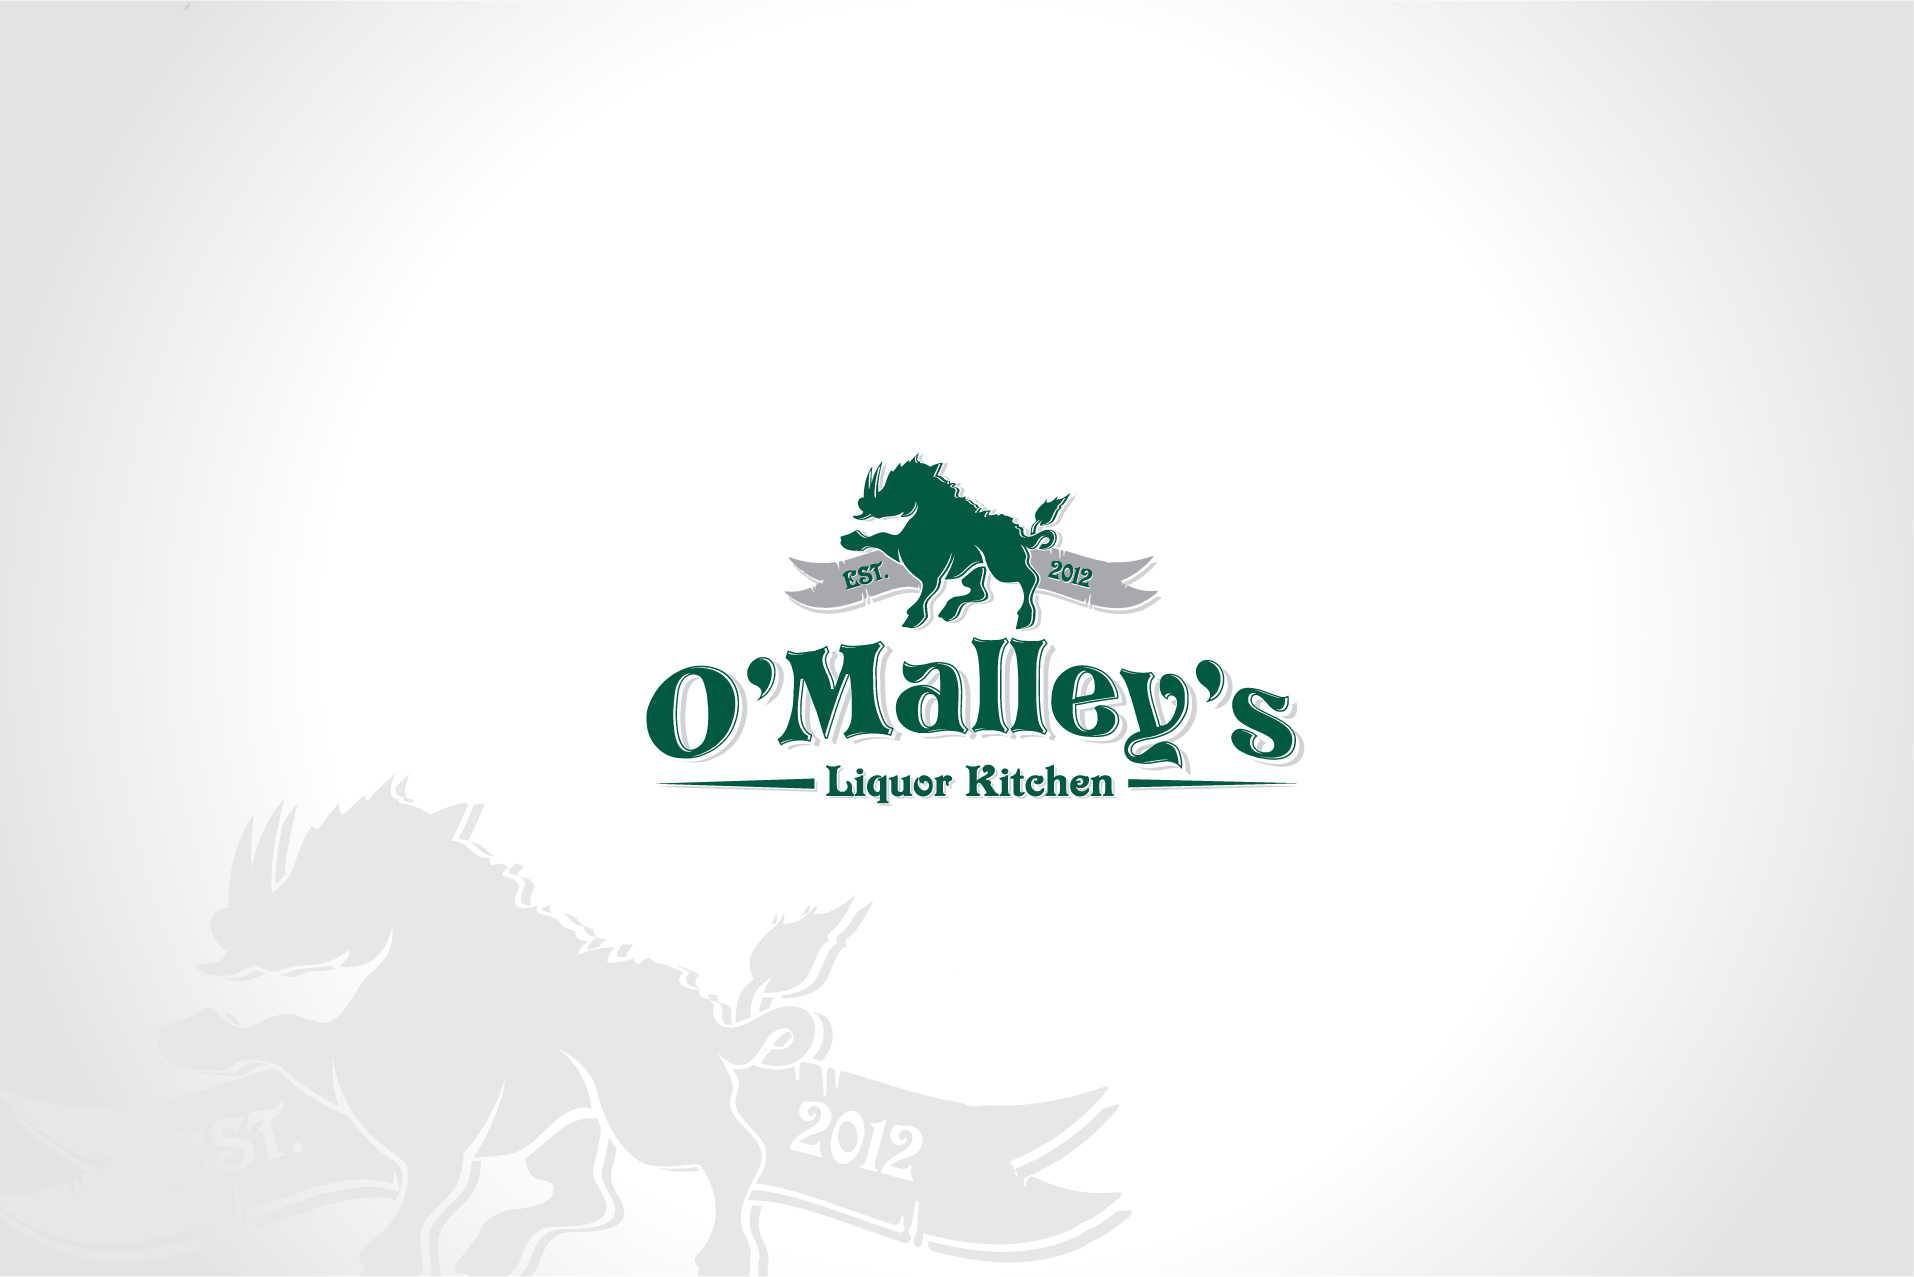 New logo wanted for O'Malley's Liquor Kitchen